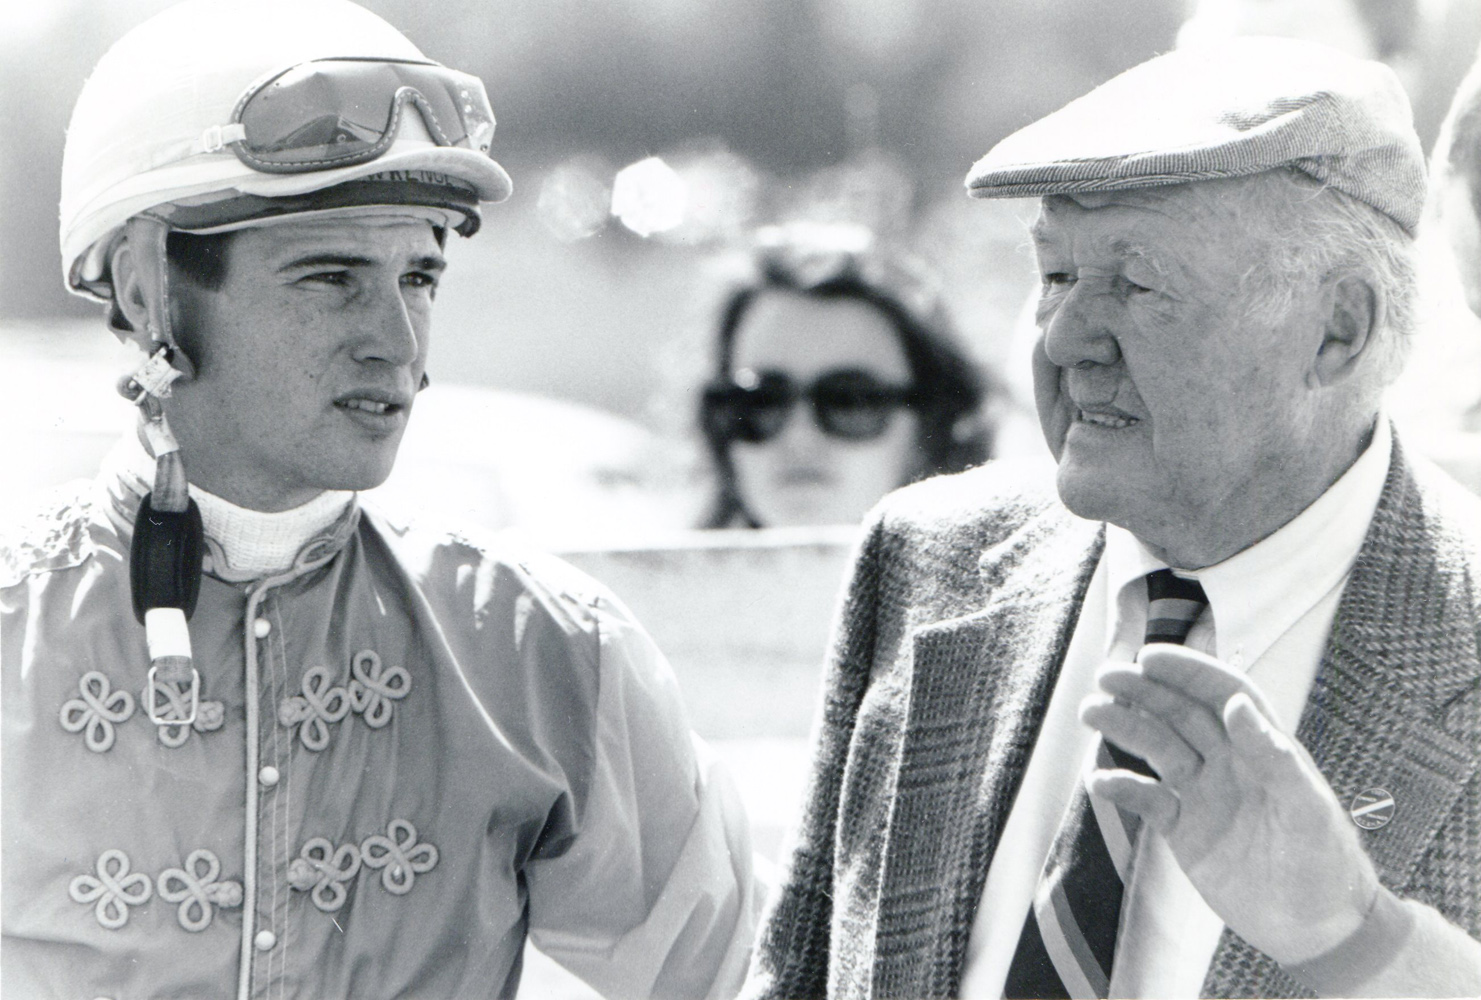 Jockey J. Lawrence and trainer W. Burling Cocks in the Foxfield paddock (Douglas Lees/Museum Collection)